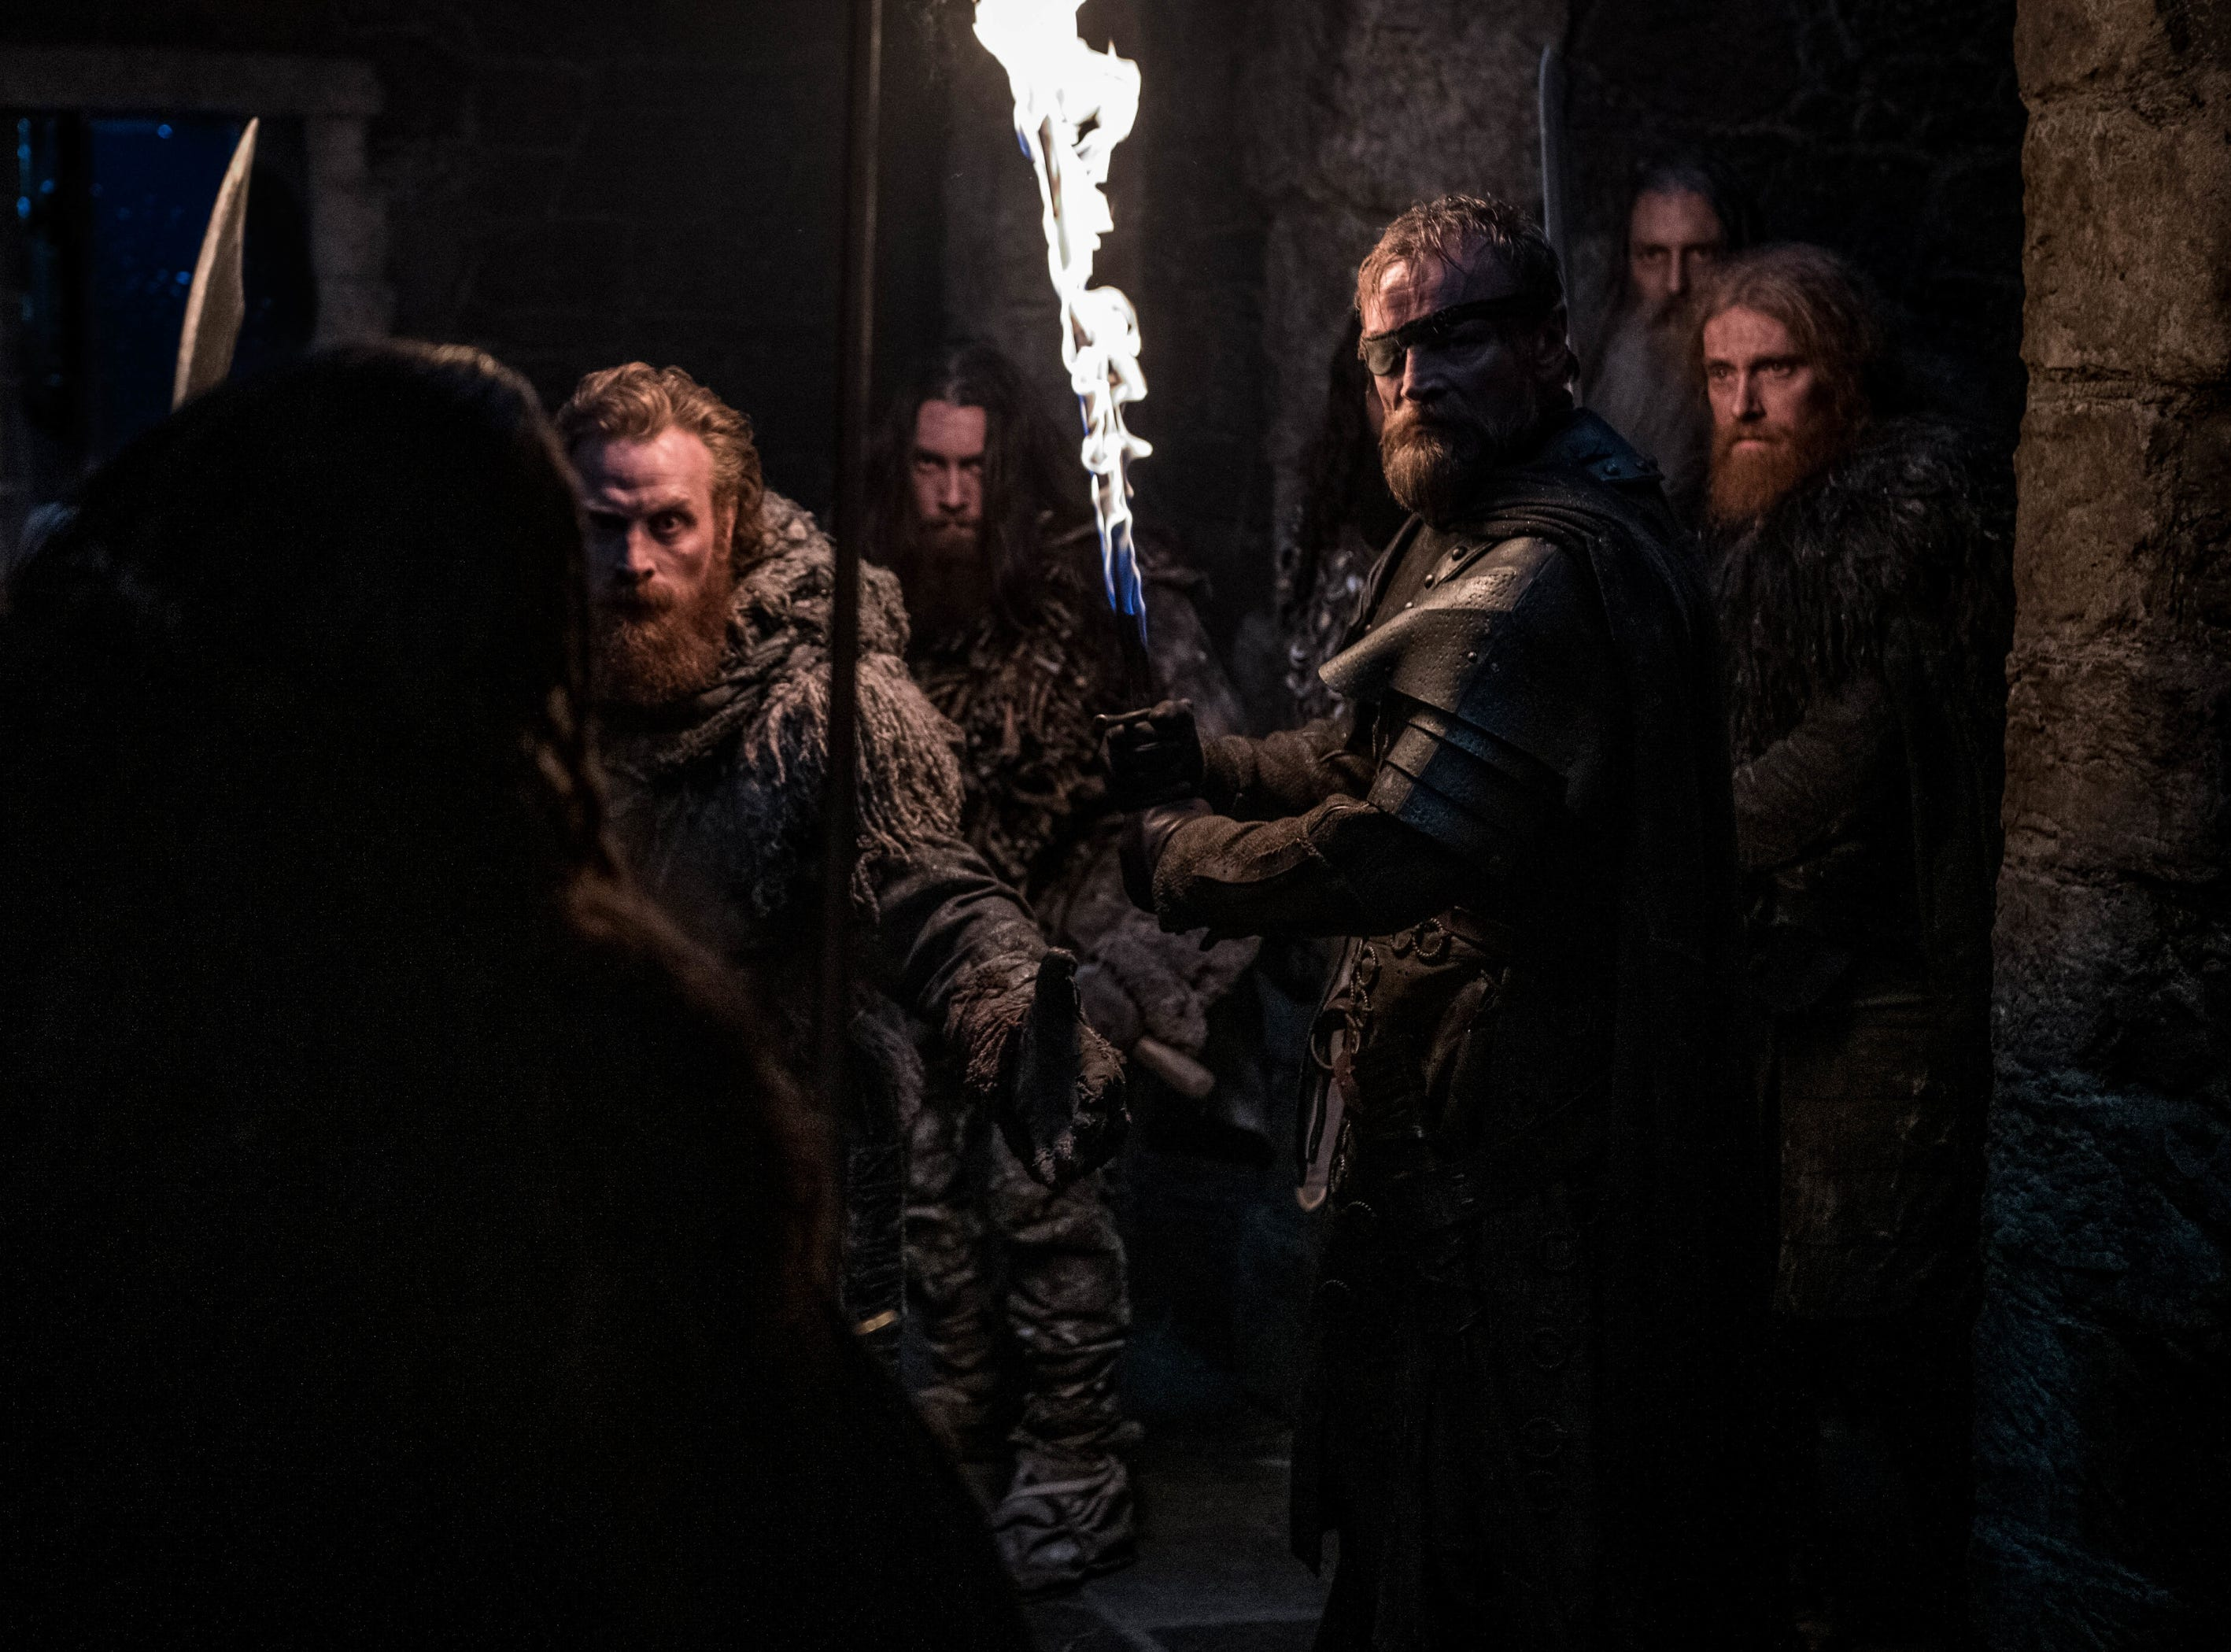 Tormund (Kristofer Hivju) and Beric Dondarrion (Richard Dormer) investigate.